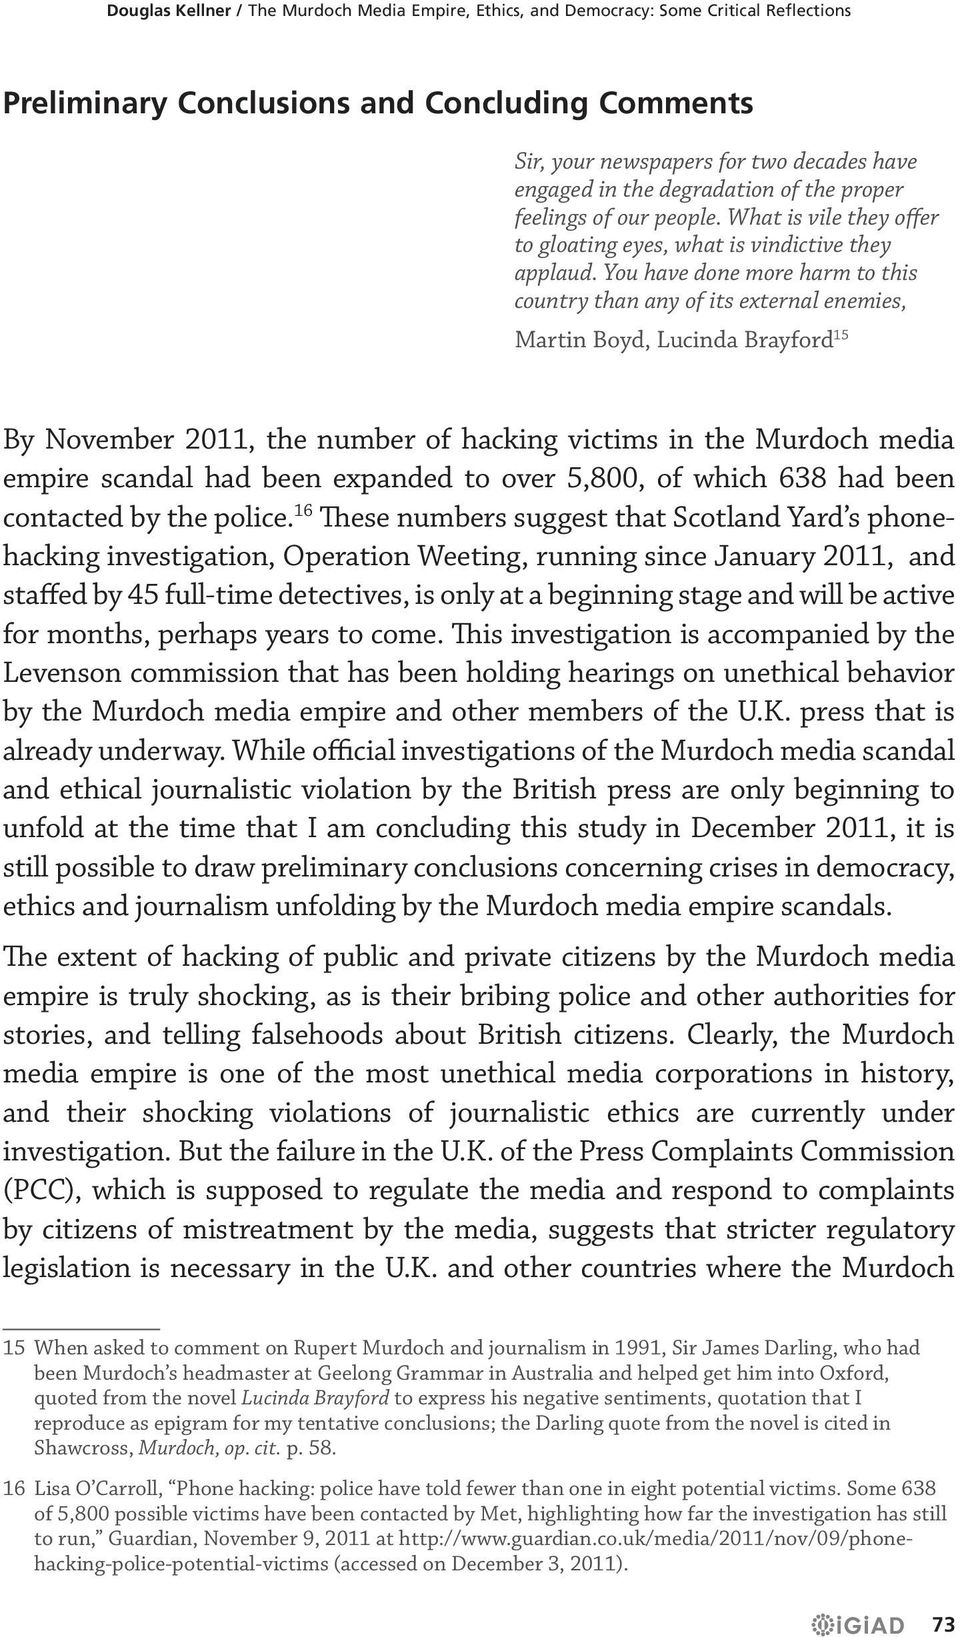 You have done more harm to this country than any of its external enemies, Martin Boyd, Lucinda Brayford 15 By November 2011, the number of hacking victims in the Murdoch media empire scandal had been